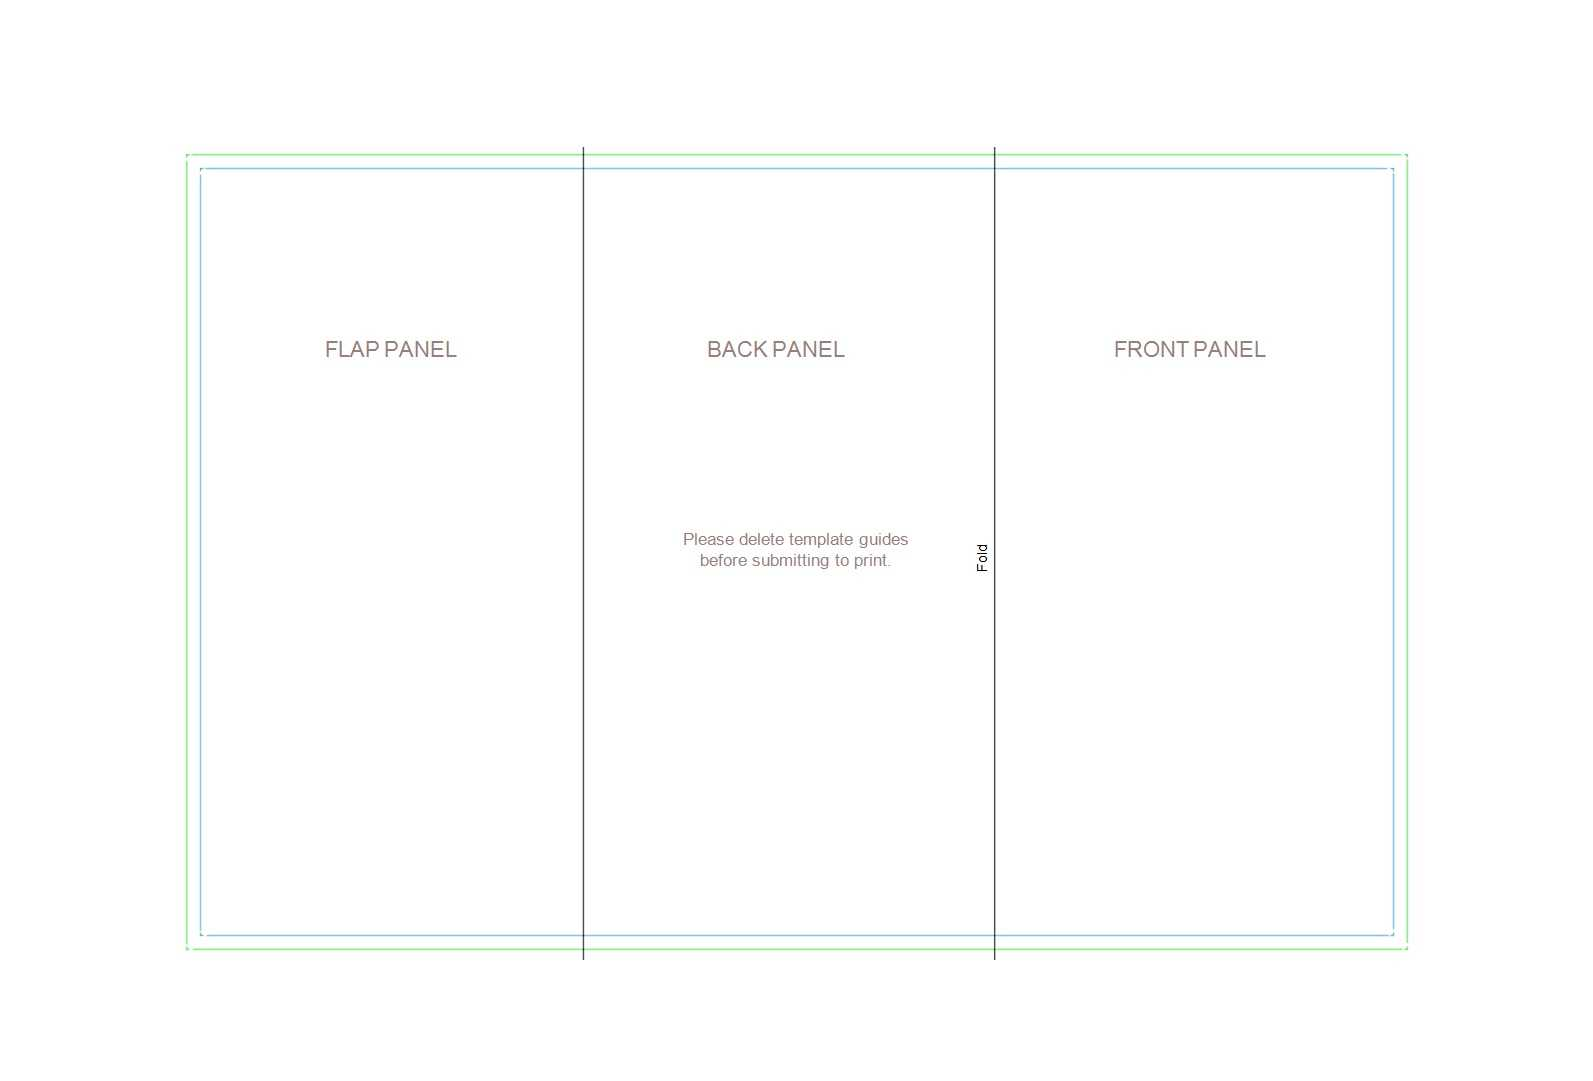 50 Free Pamphlet Templates [Word / Google Docs] ᐅ Template Lab With Google Drive Brochure Template